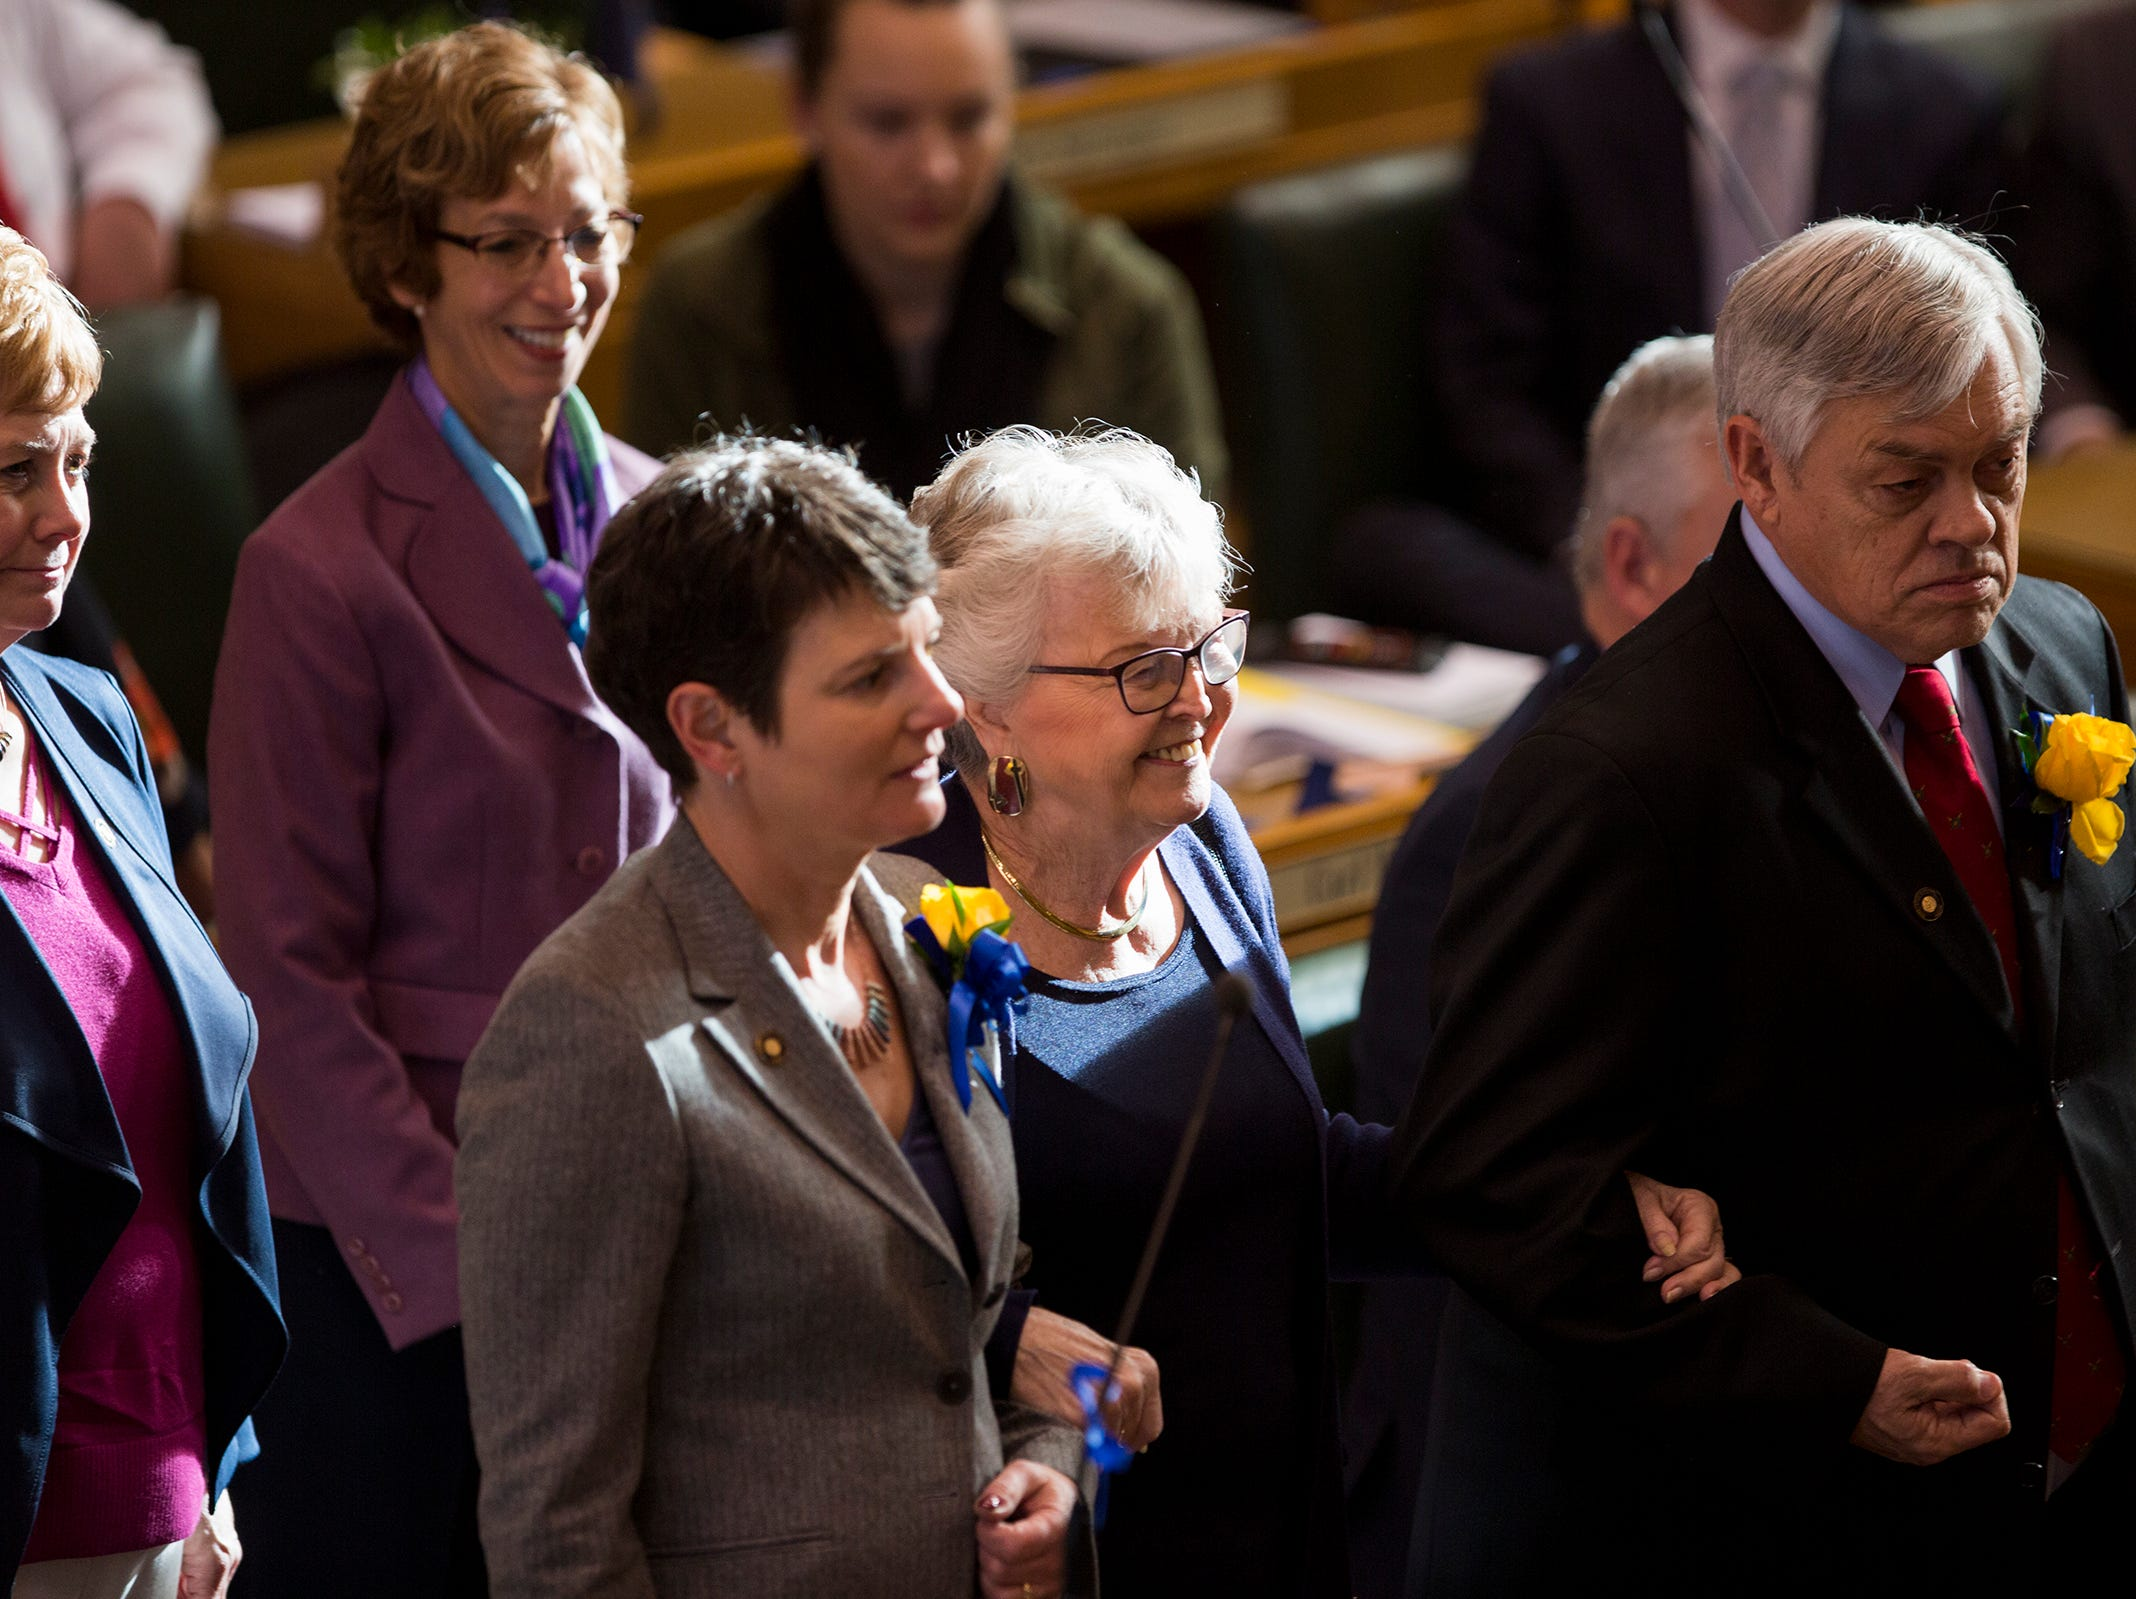 Former Governor Barbara Roberts is escorted into the House chamber before Kate Brown's inauguration at the Oregon State Capitol on Jan. 14, 2019.